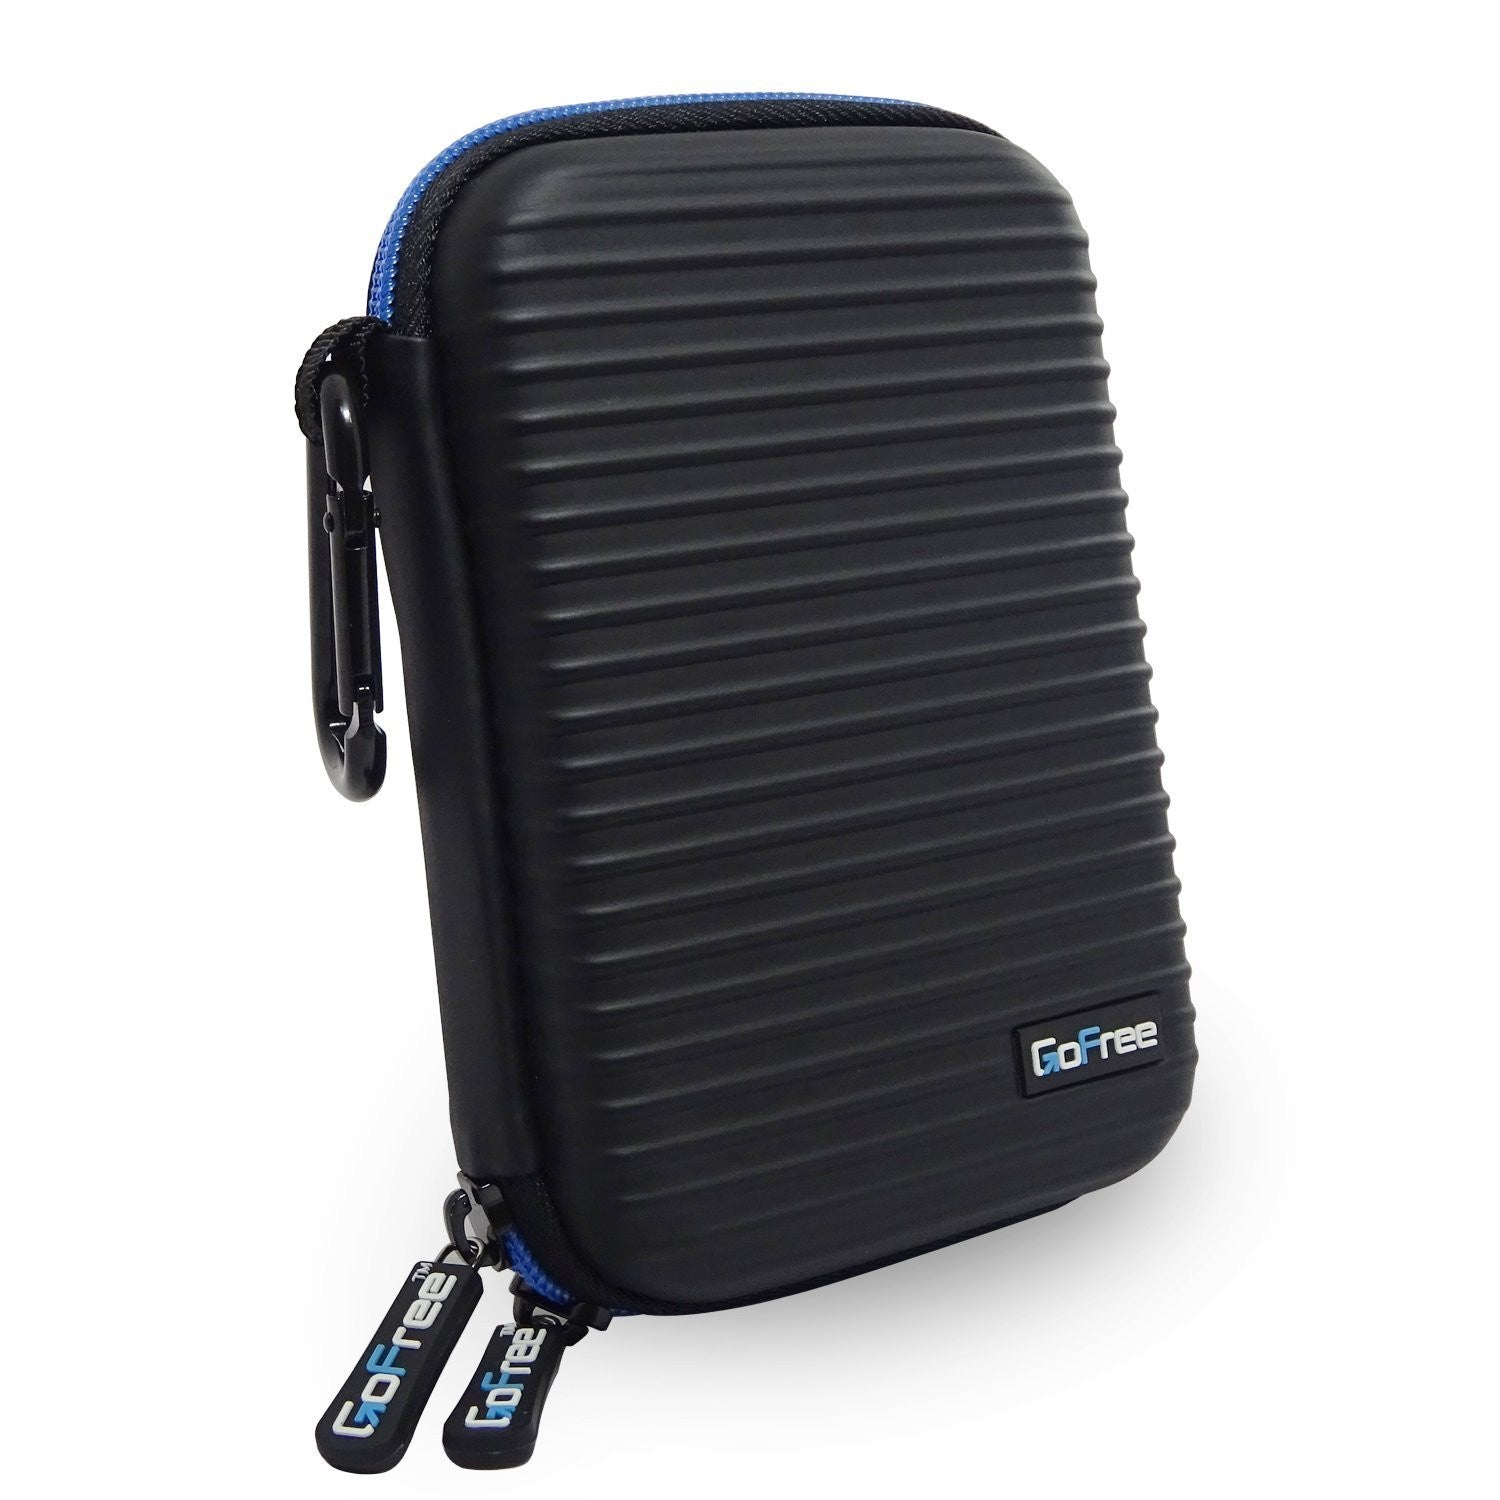 GoFree Double Protection Armor Hard Disk Carrying Case